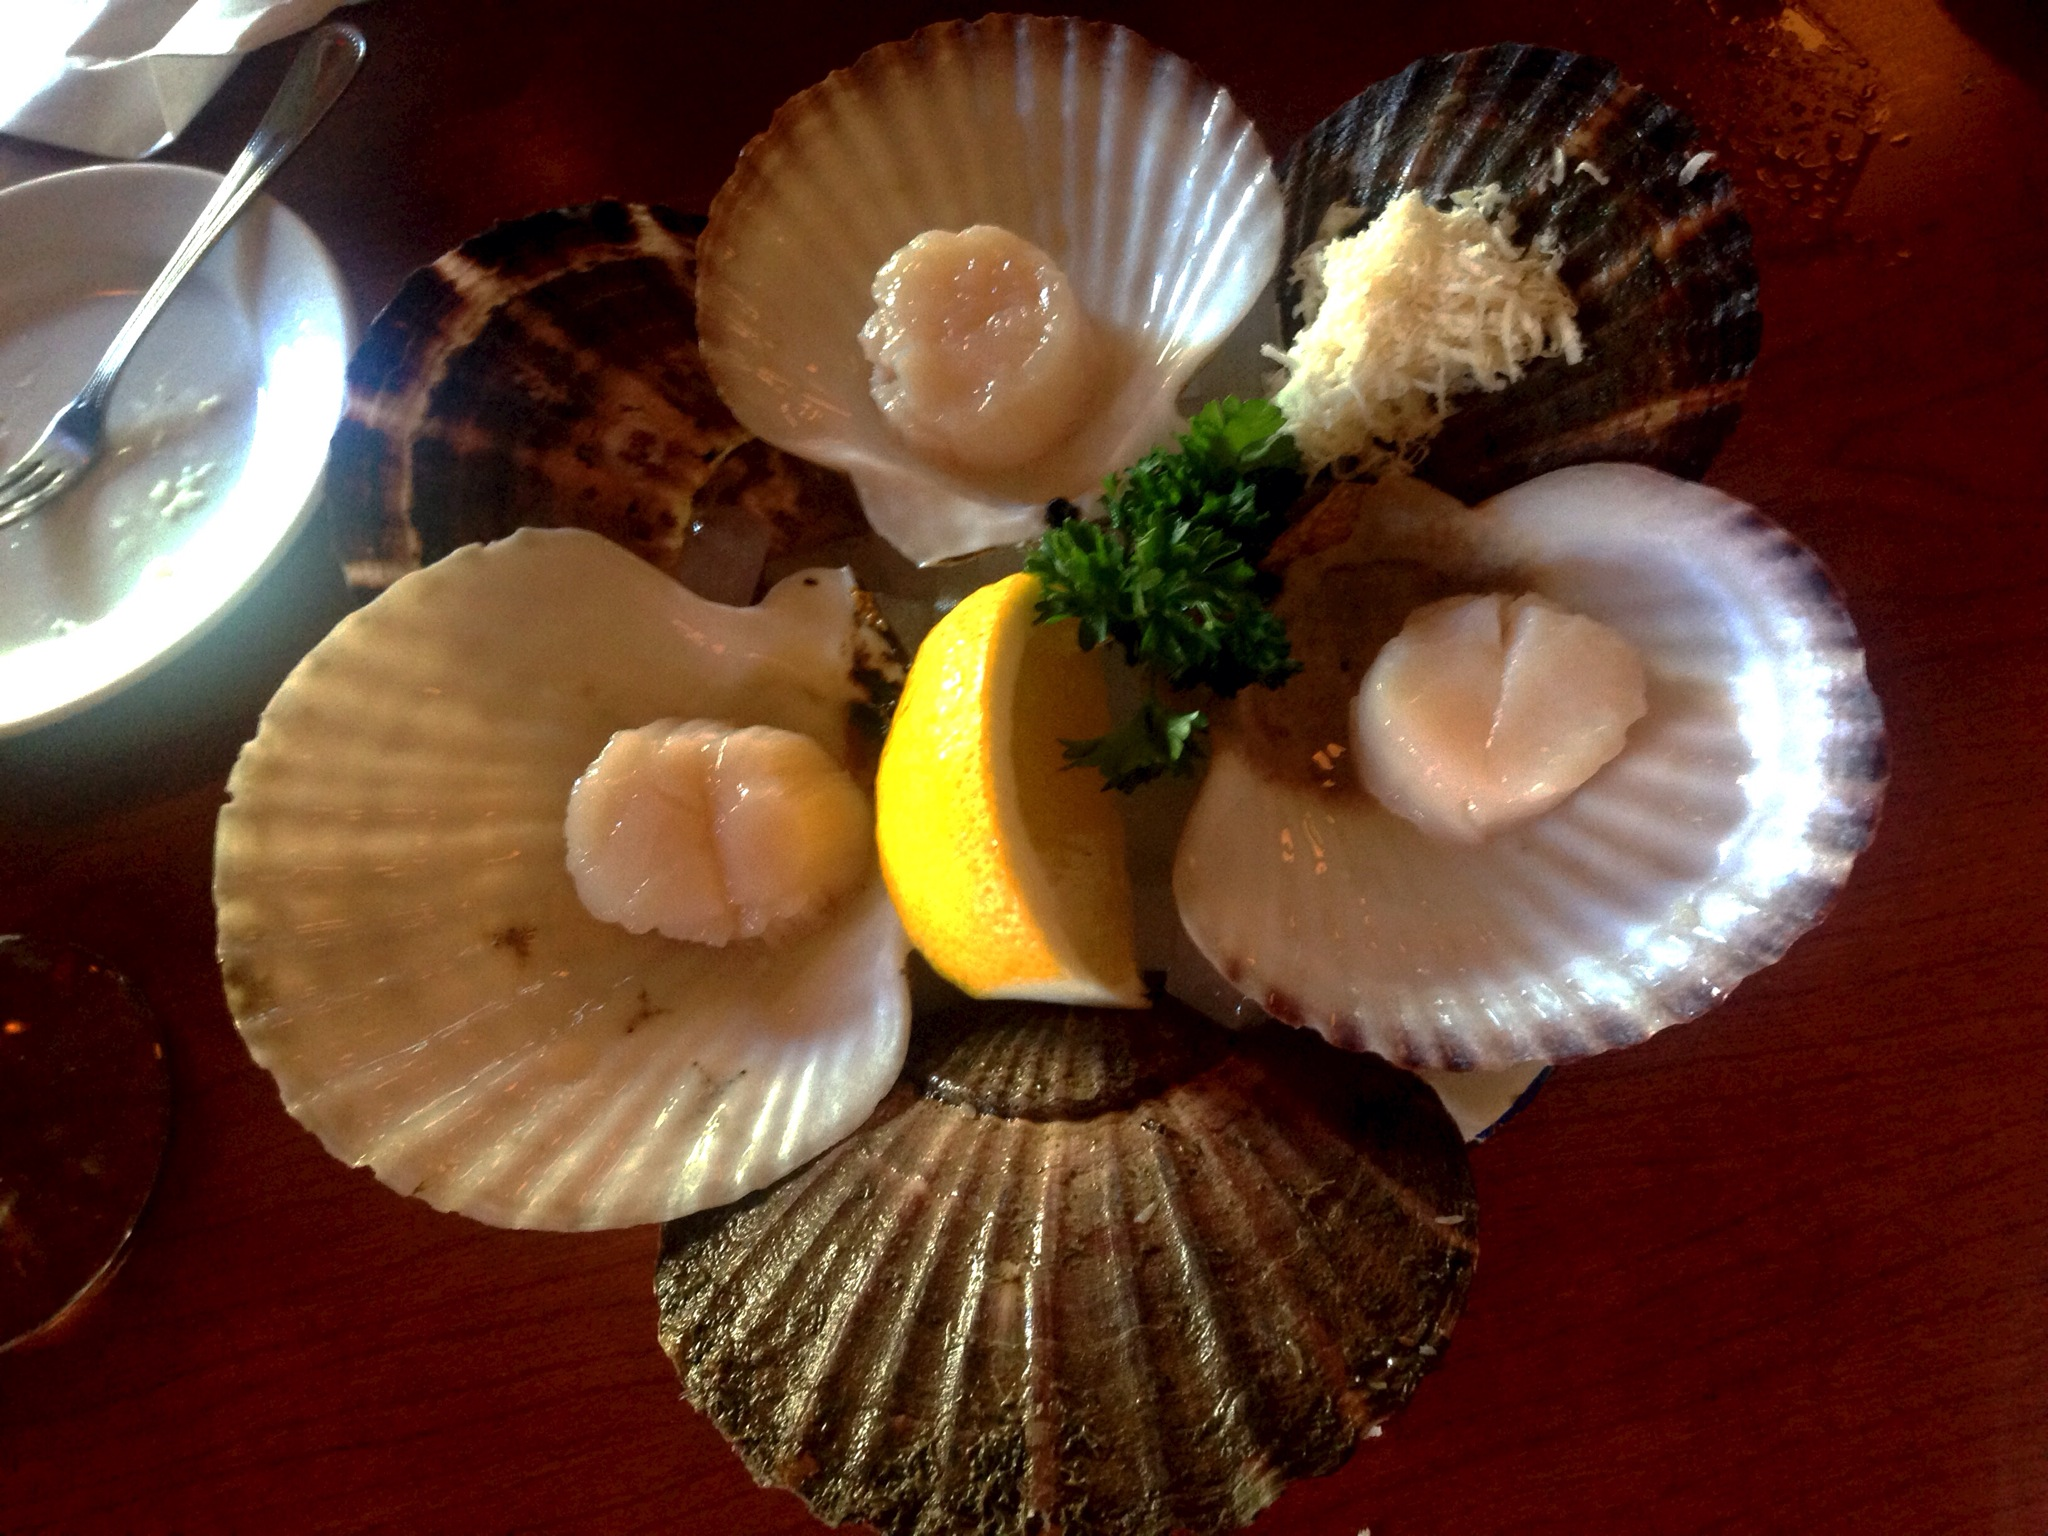 Raw Scallop @ Oyster Express